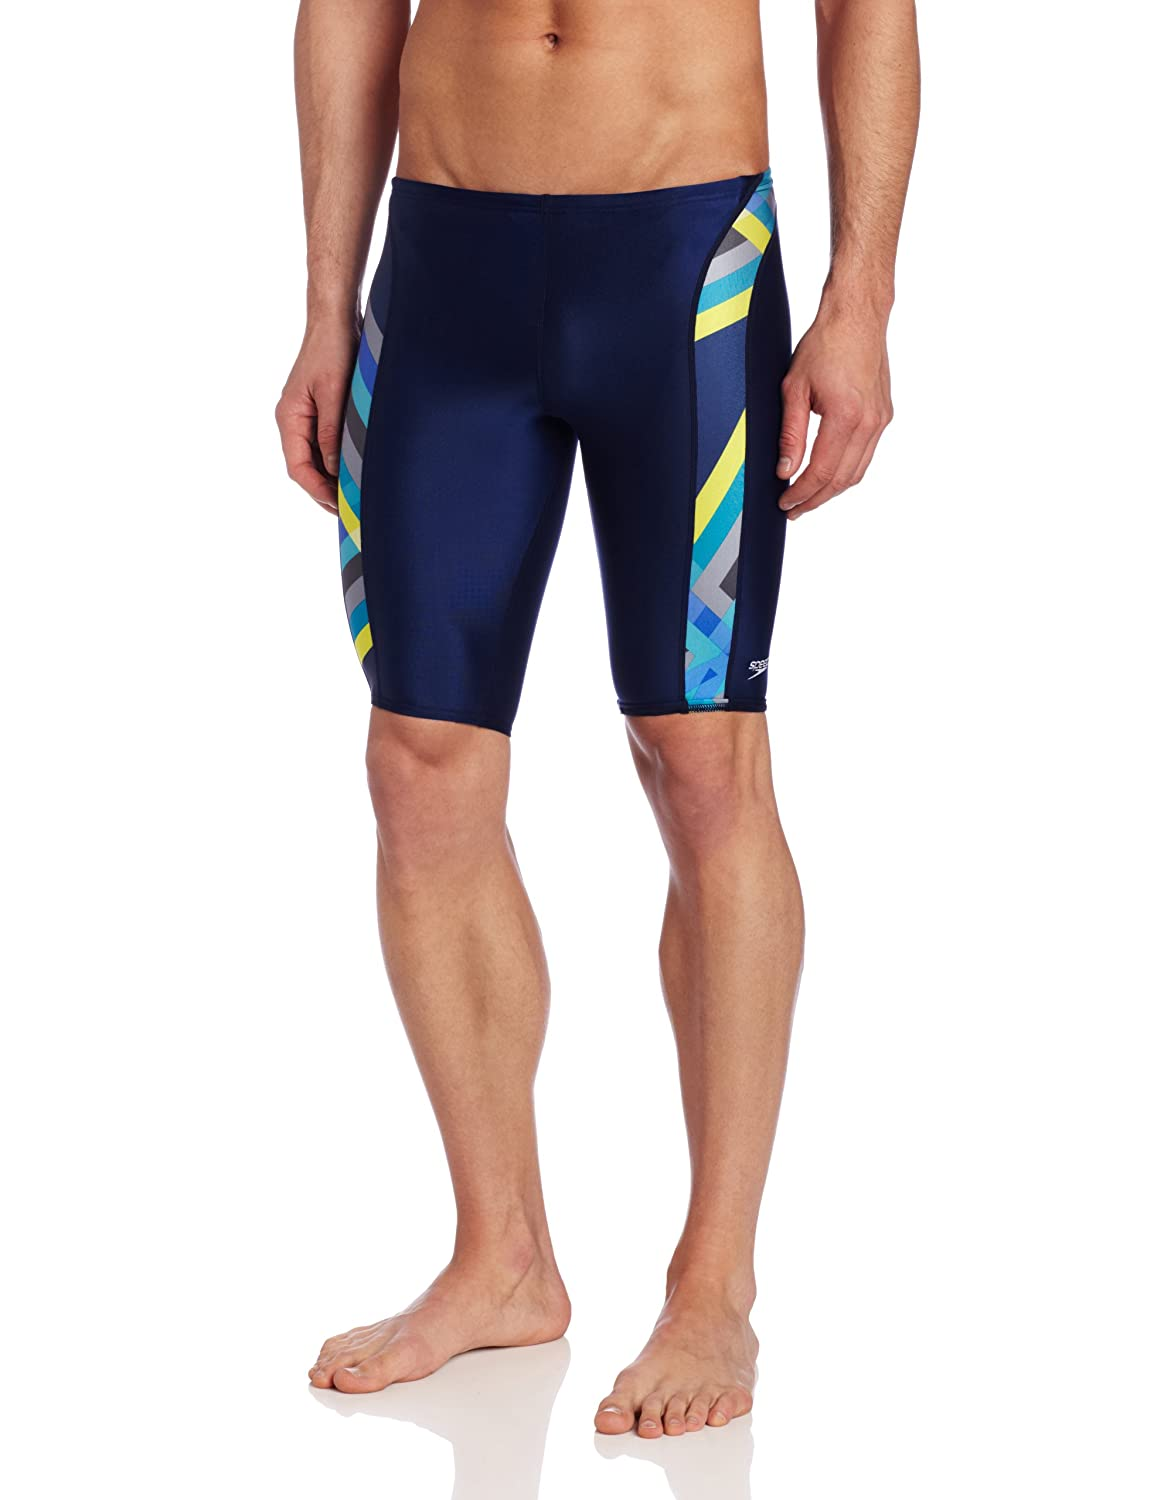 Speedo Men's Laser Stripe Jammer Swimsuit 8051375